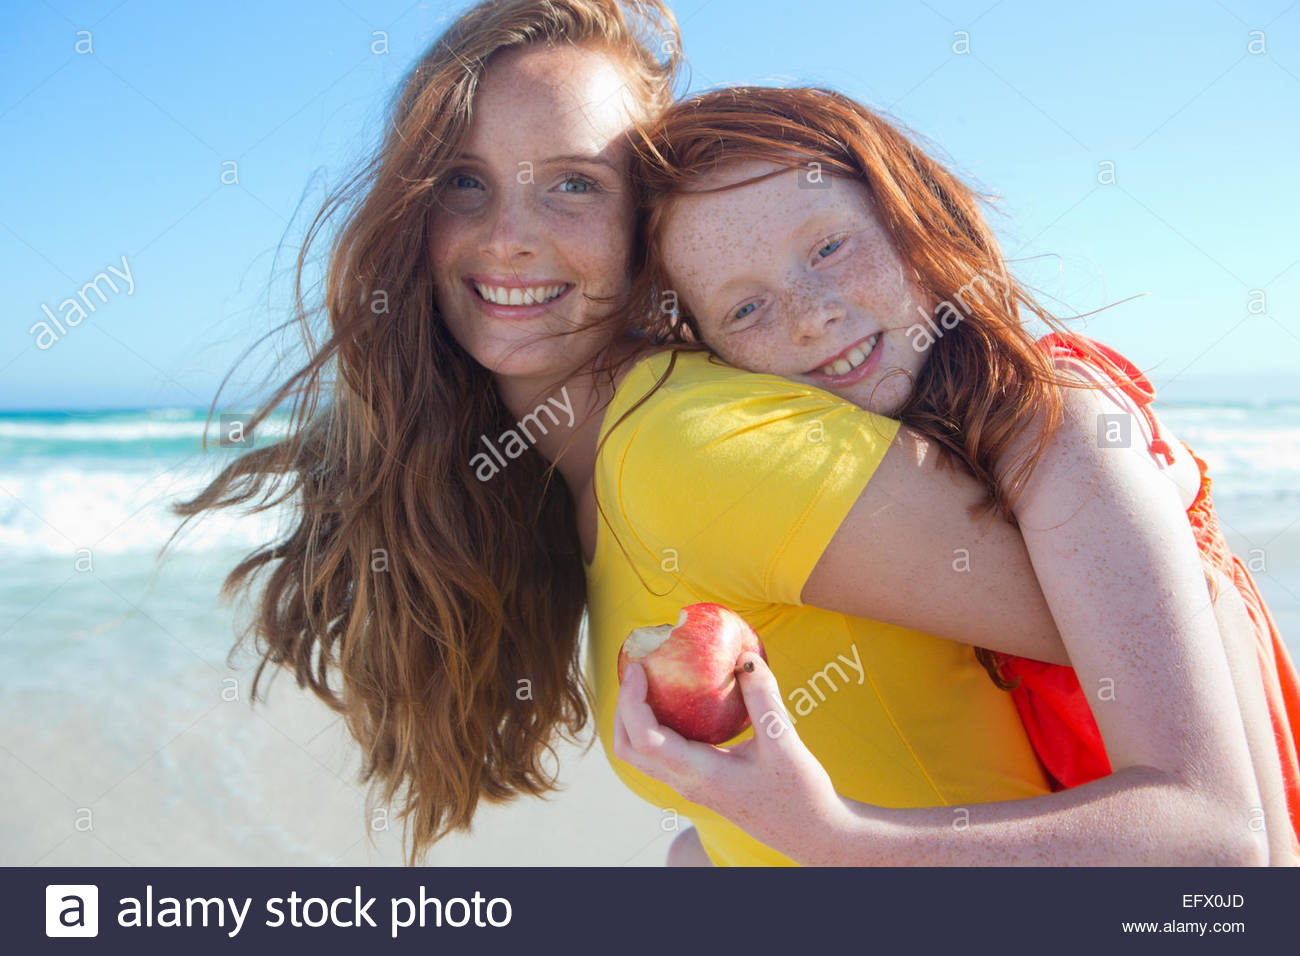 Portrait of smiling girl holding apple, mère, on sunny beach Photo Stock